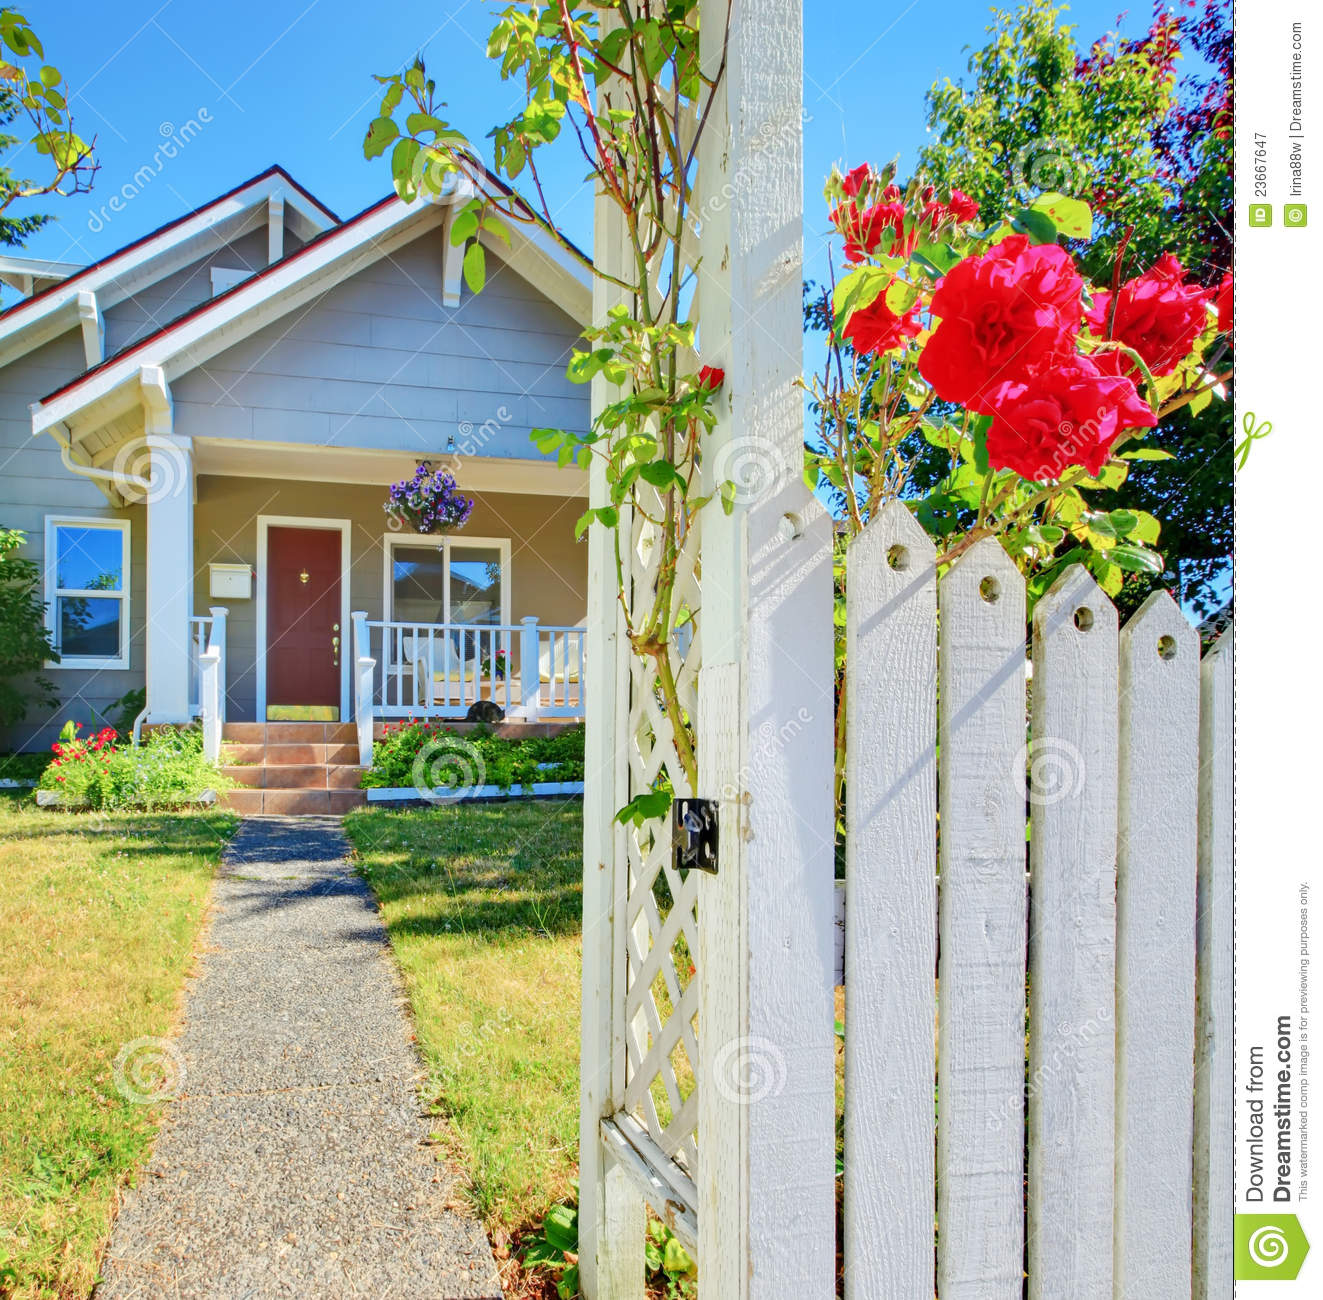 Red entrance door in front of residential house stock photo - Small House And White Fence With Roses Royalty Free Stock